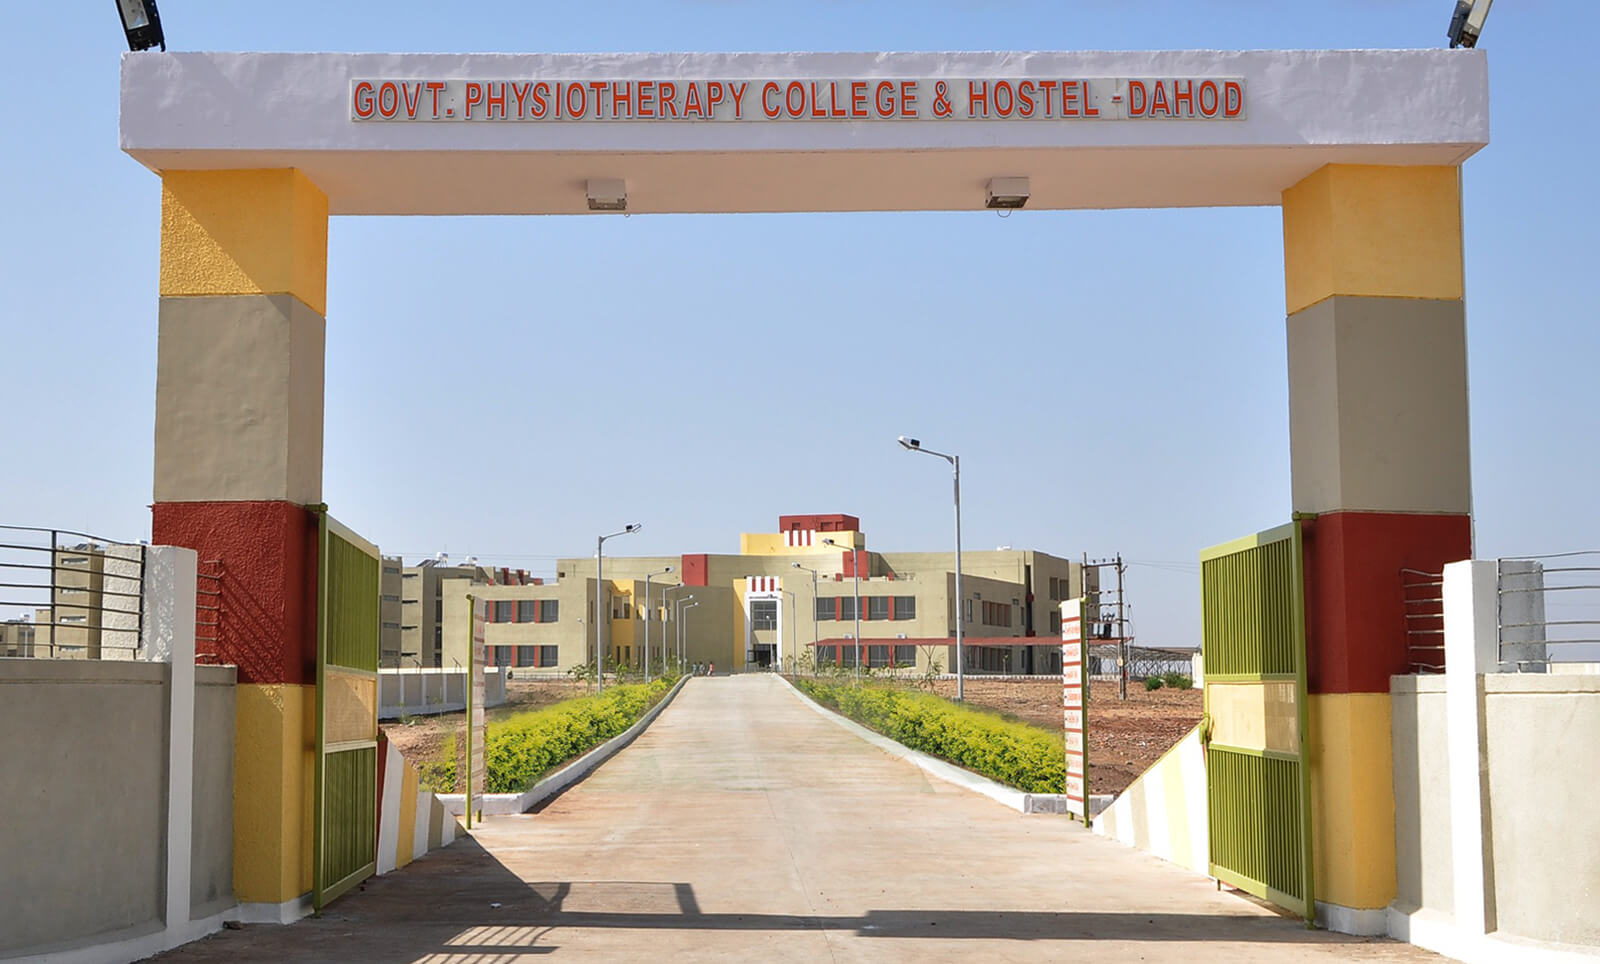 Government Physiotherapy College, Dahod